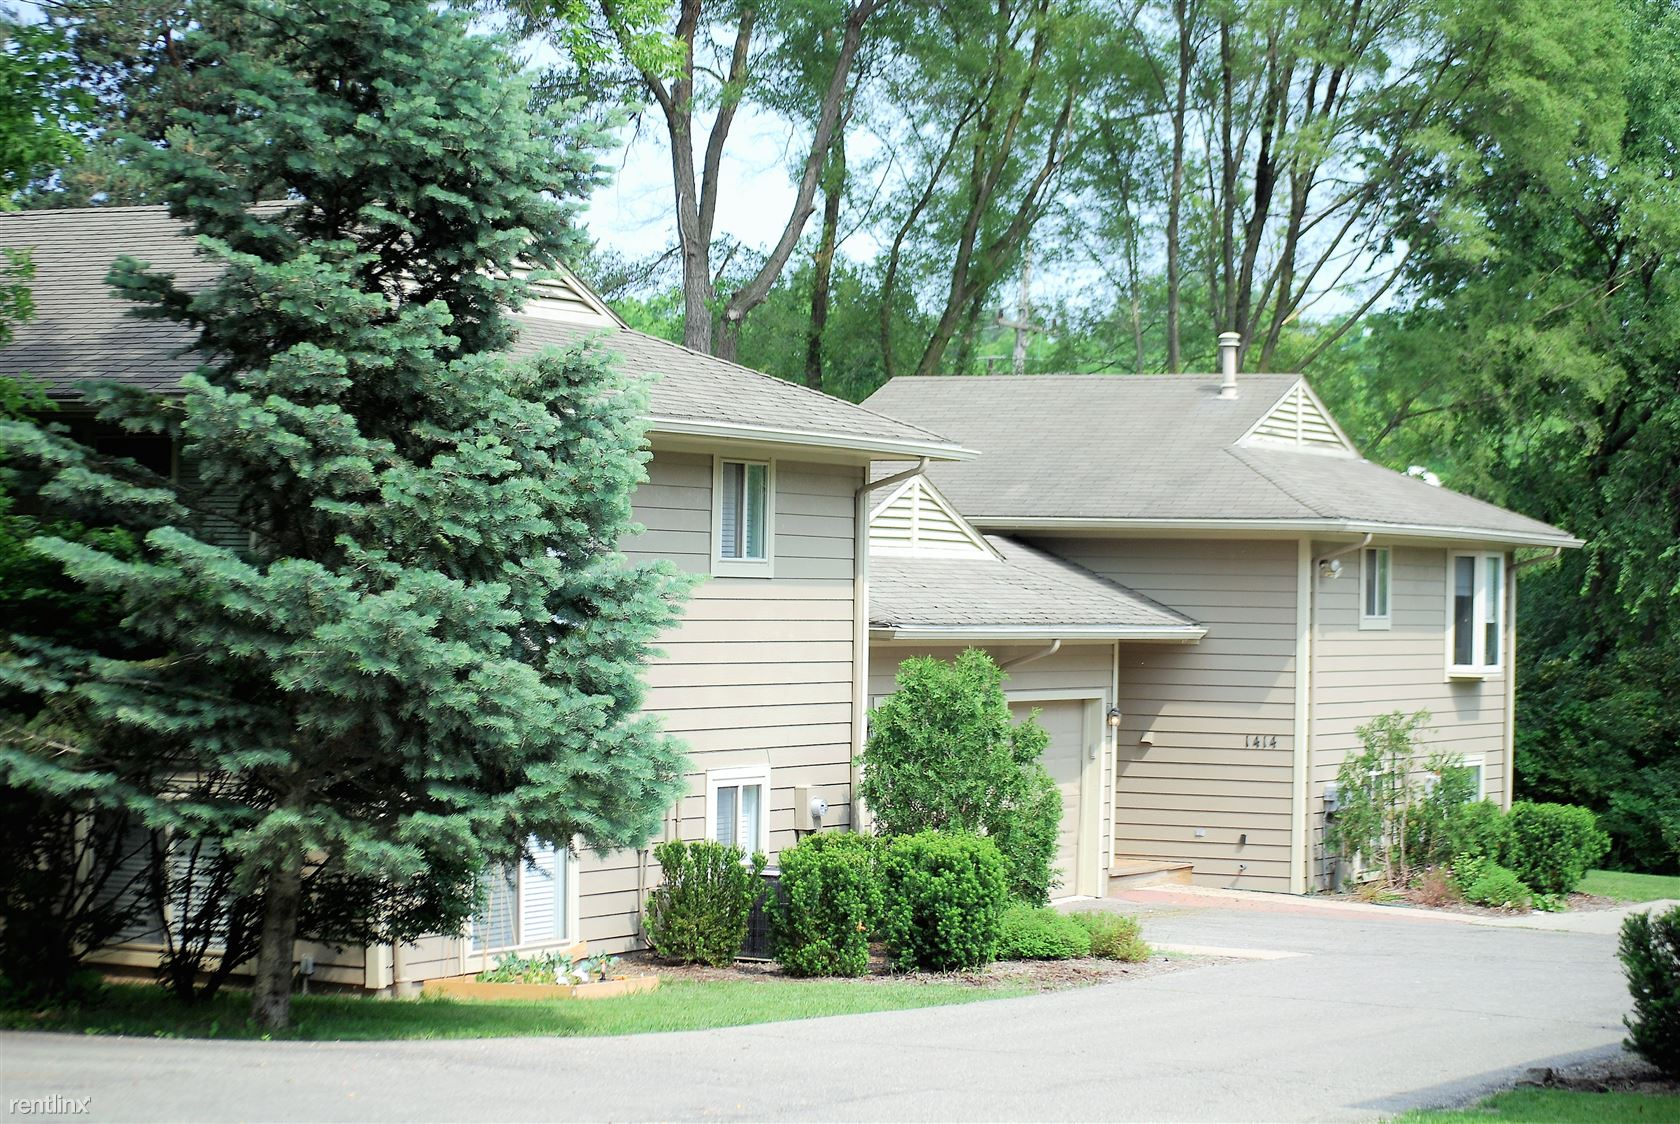 1414 Traver Rd - 3100USD / month